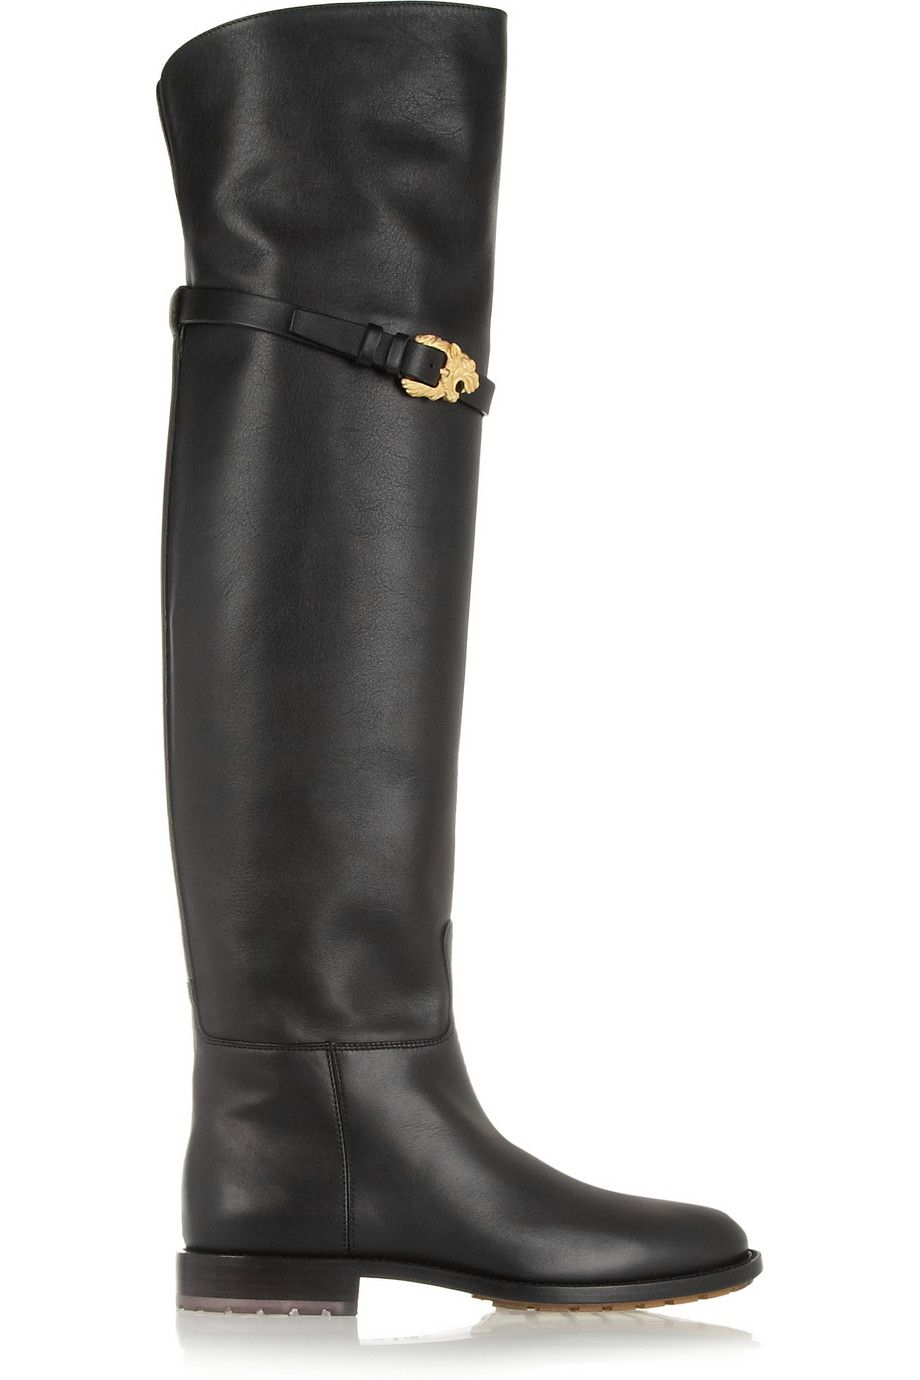 6925895f9beb VALENTINO Animalia Leather Over-the-Knee Boots - Over-the-knee boots ...